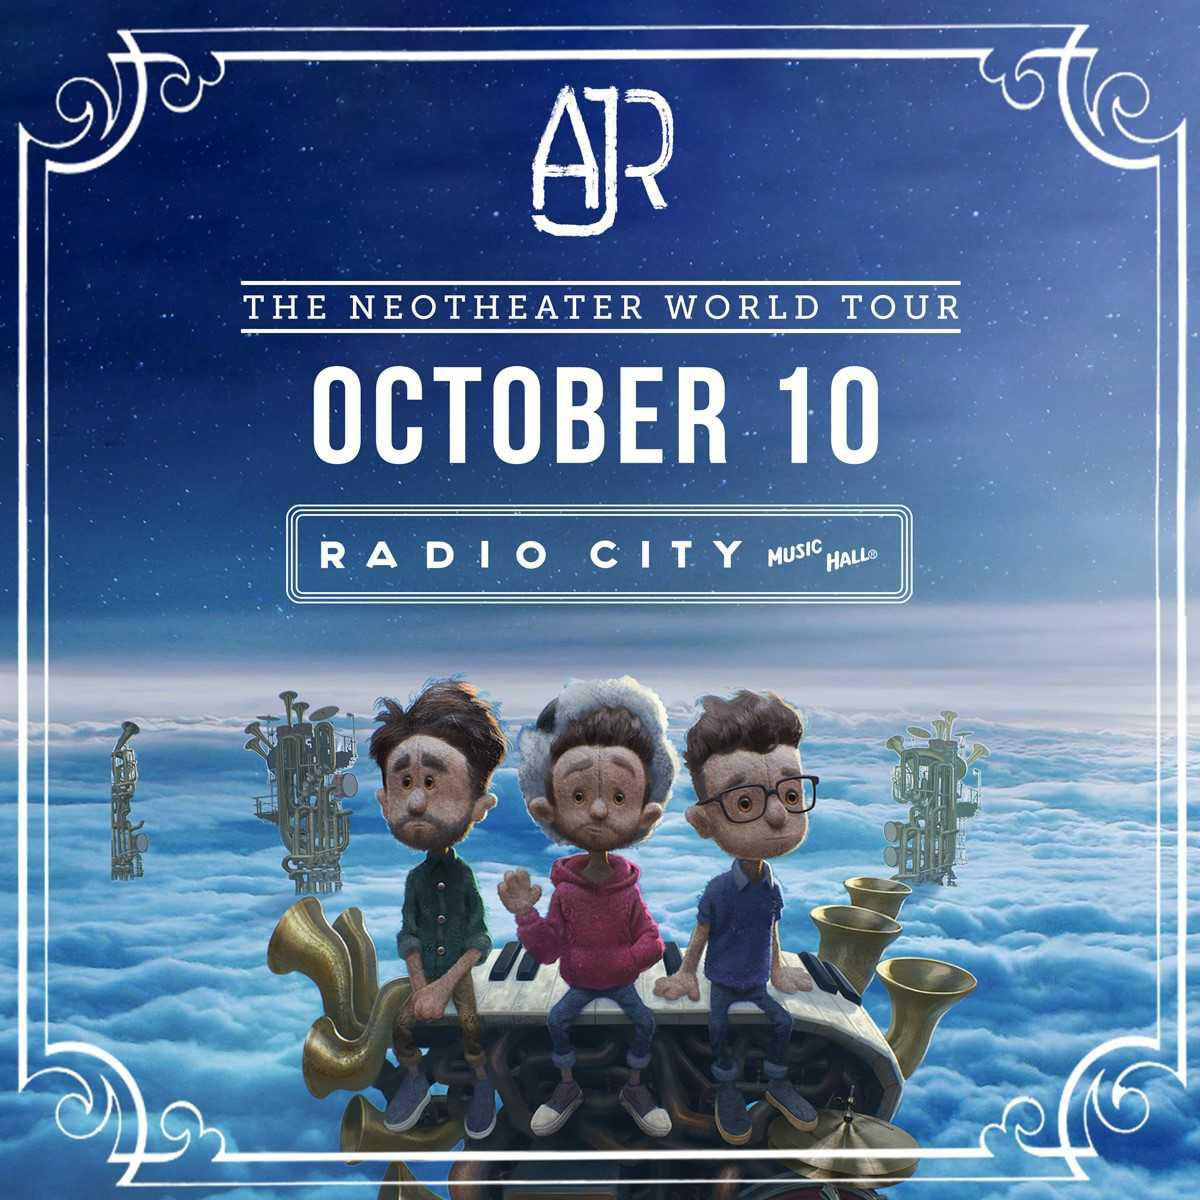 Win a Pair of Tickets to See AJR!